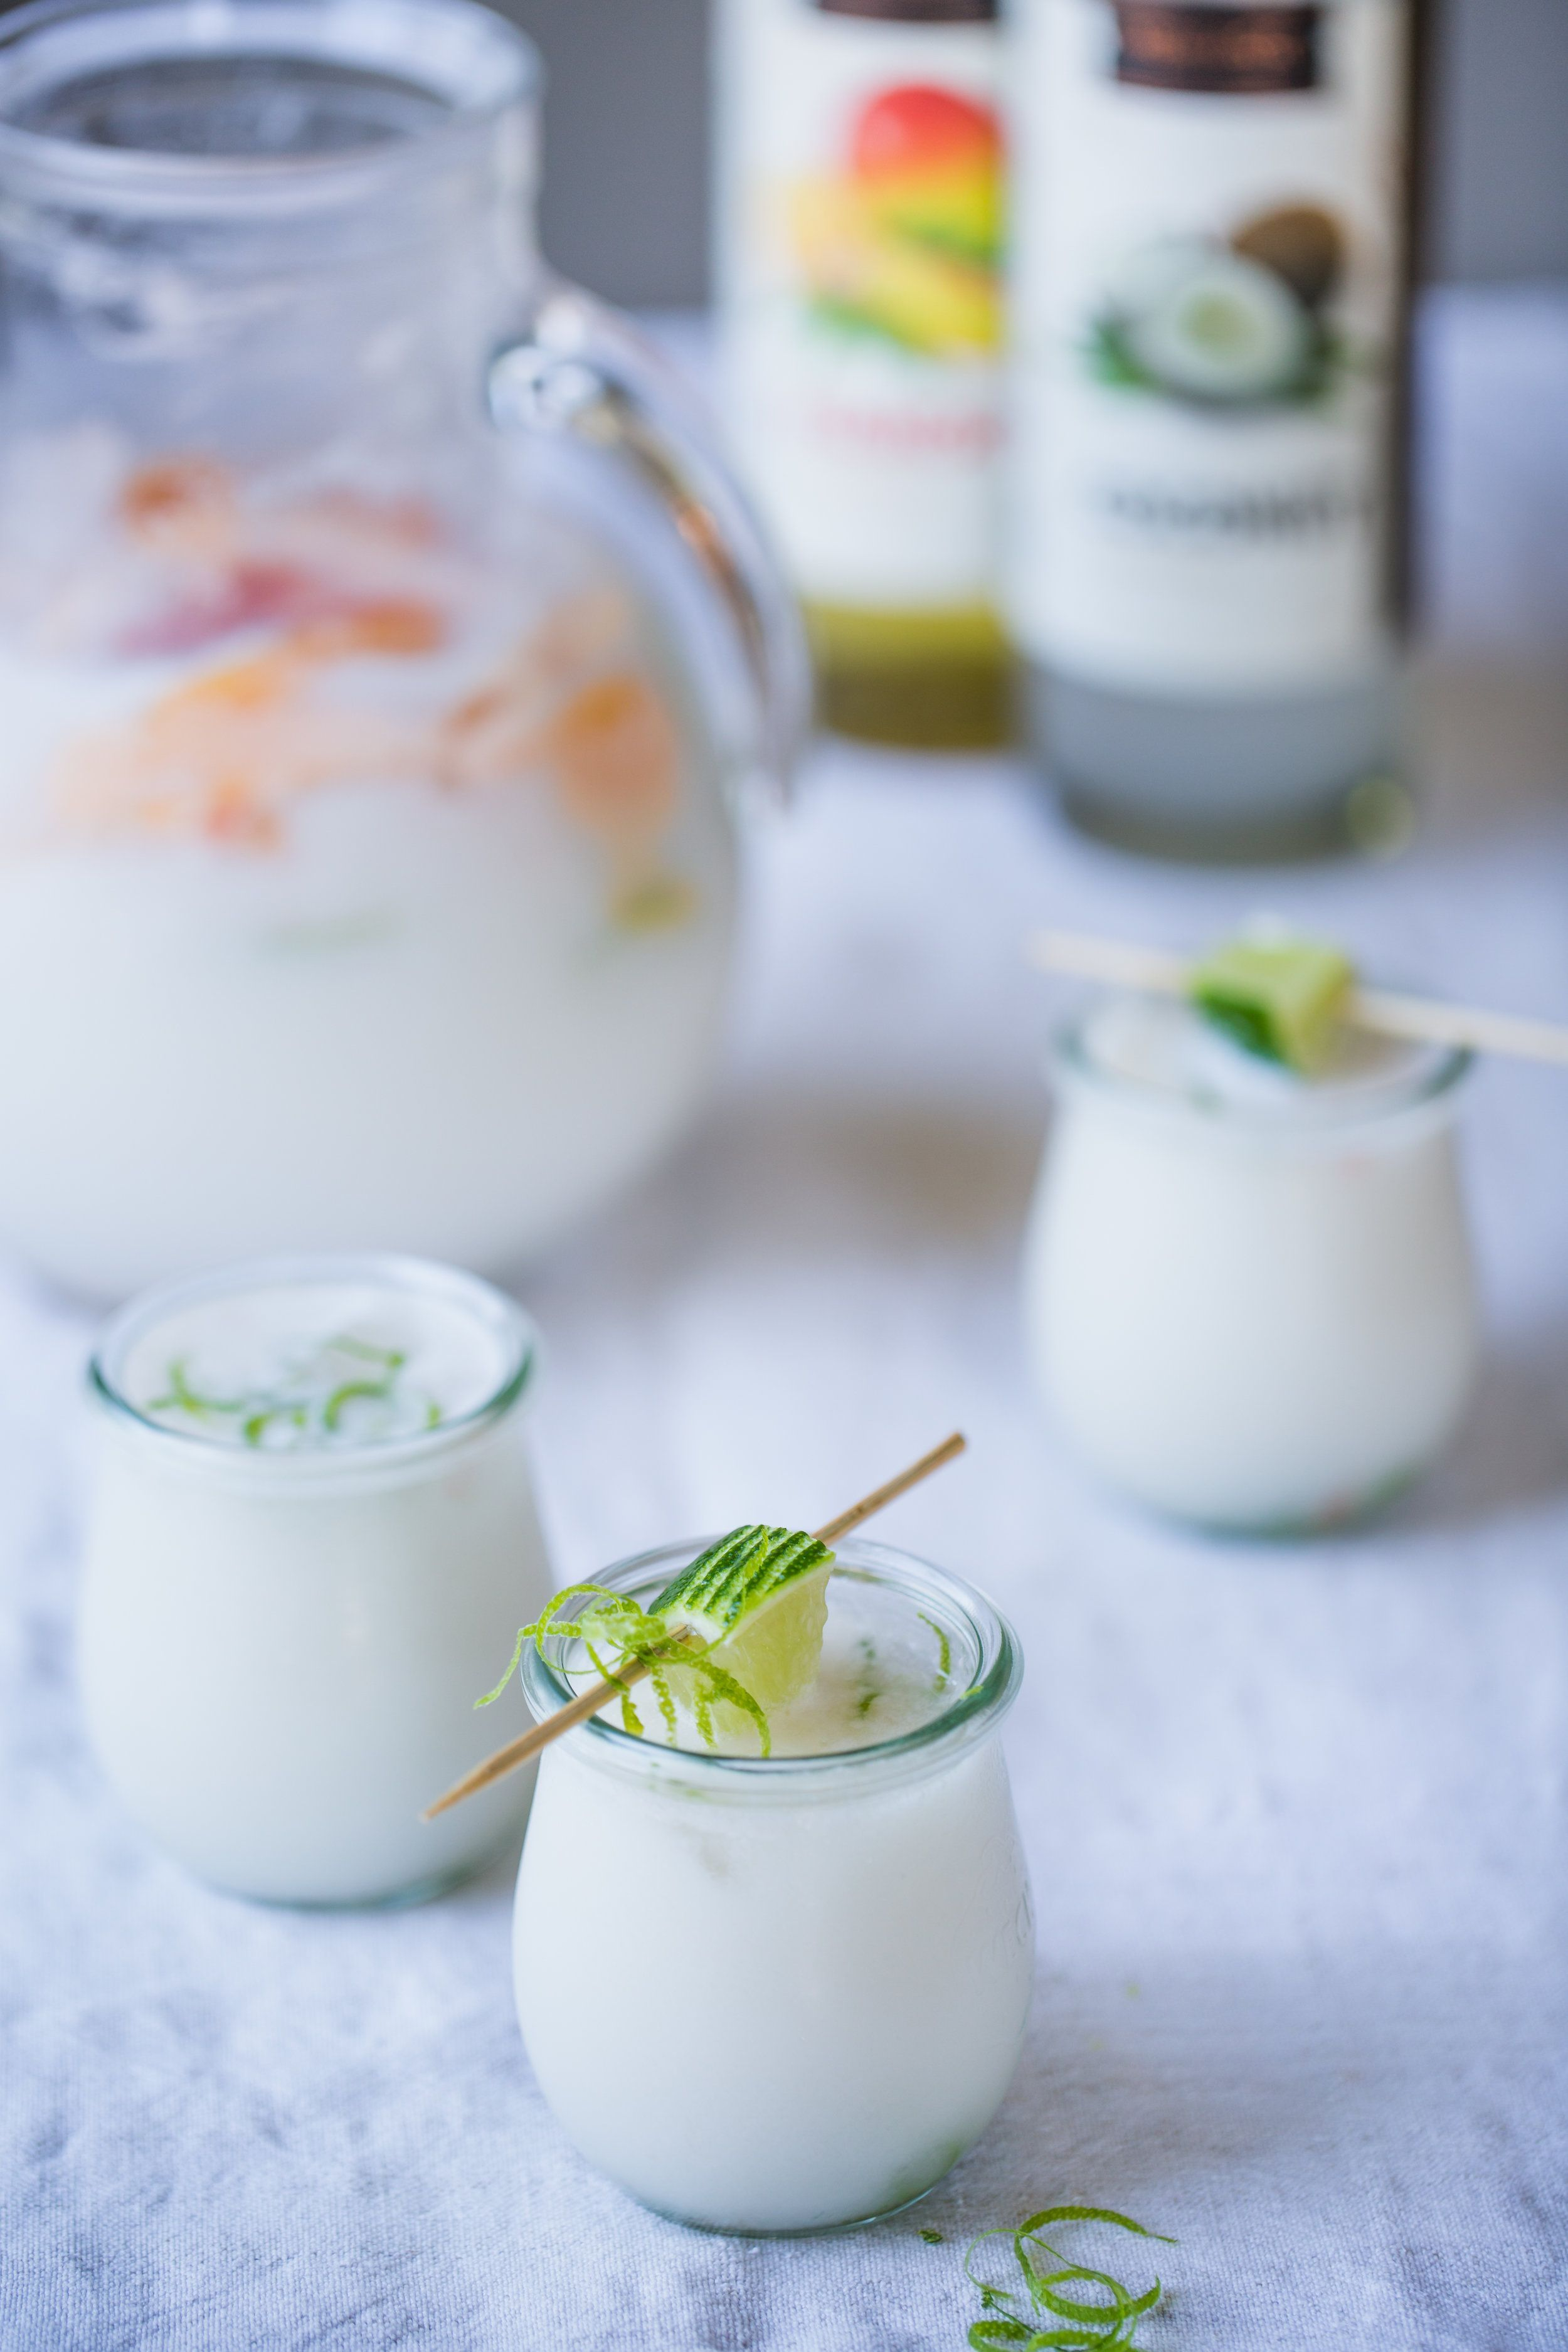 Creamy Coconut & Vodka Punch #vodkapunch Creamy Coconut & Vodka Punch — Rustic. Joyful. Food. #vodkapunch